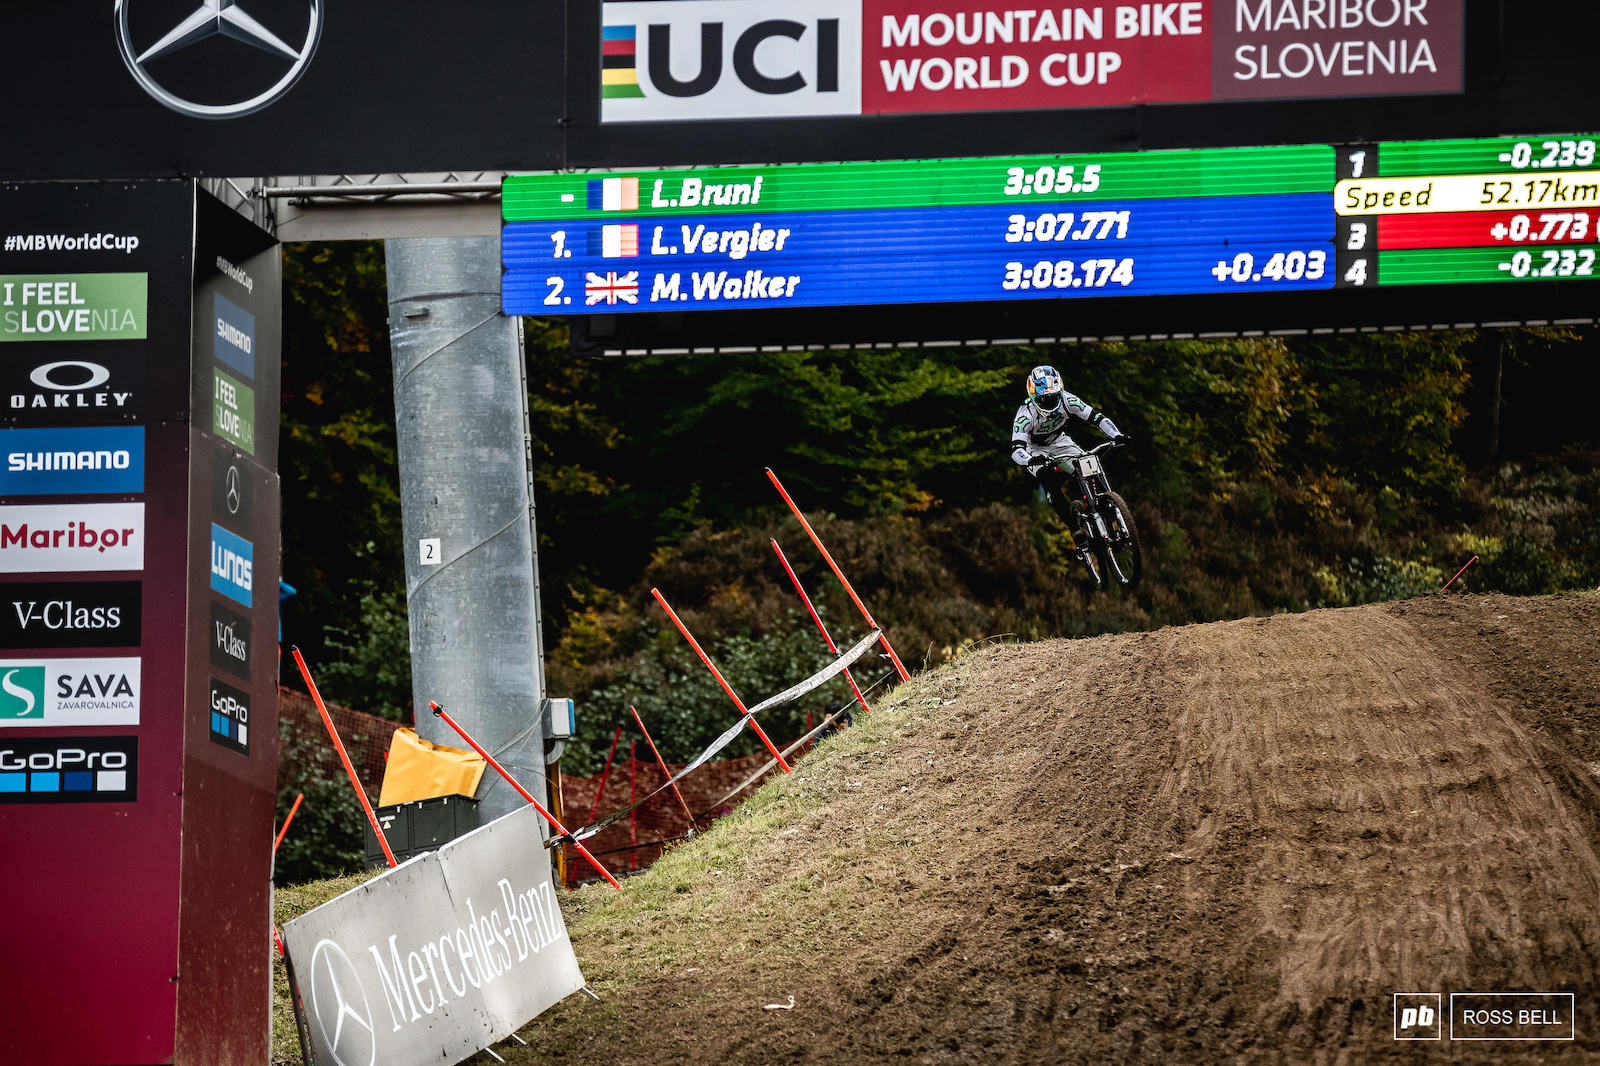 Loic Bruni was 2 tenths up going into the final split but lost a little time in the bottom woods and ended up second by the smallest of margins.